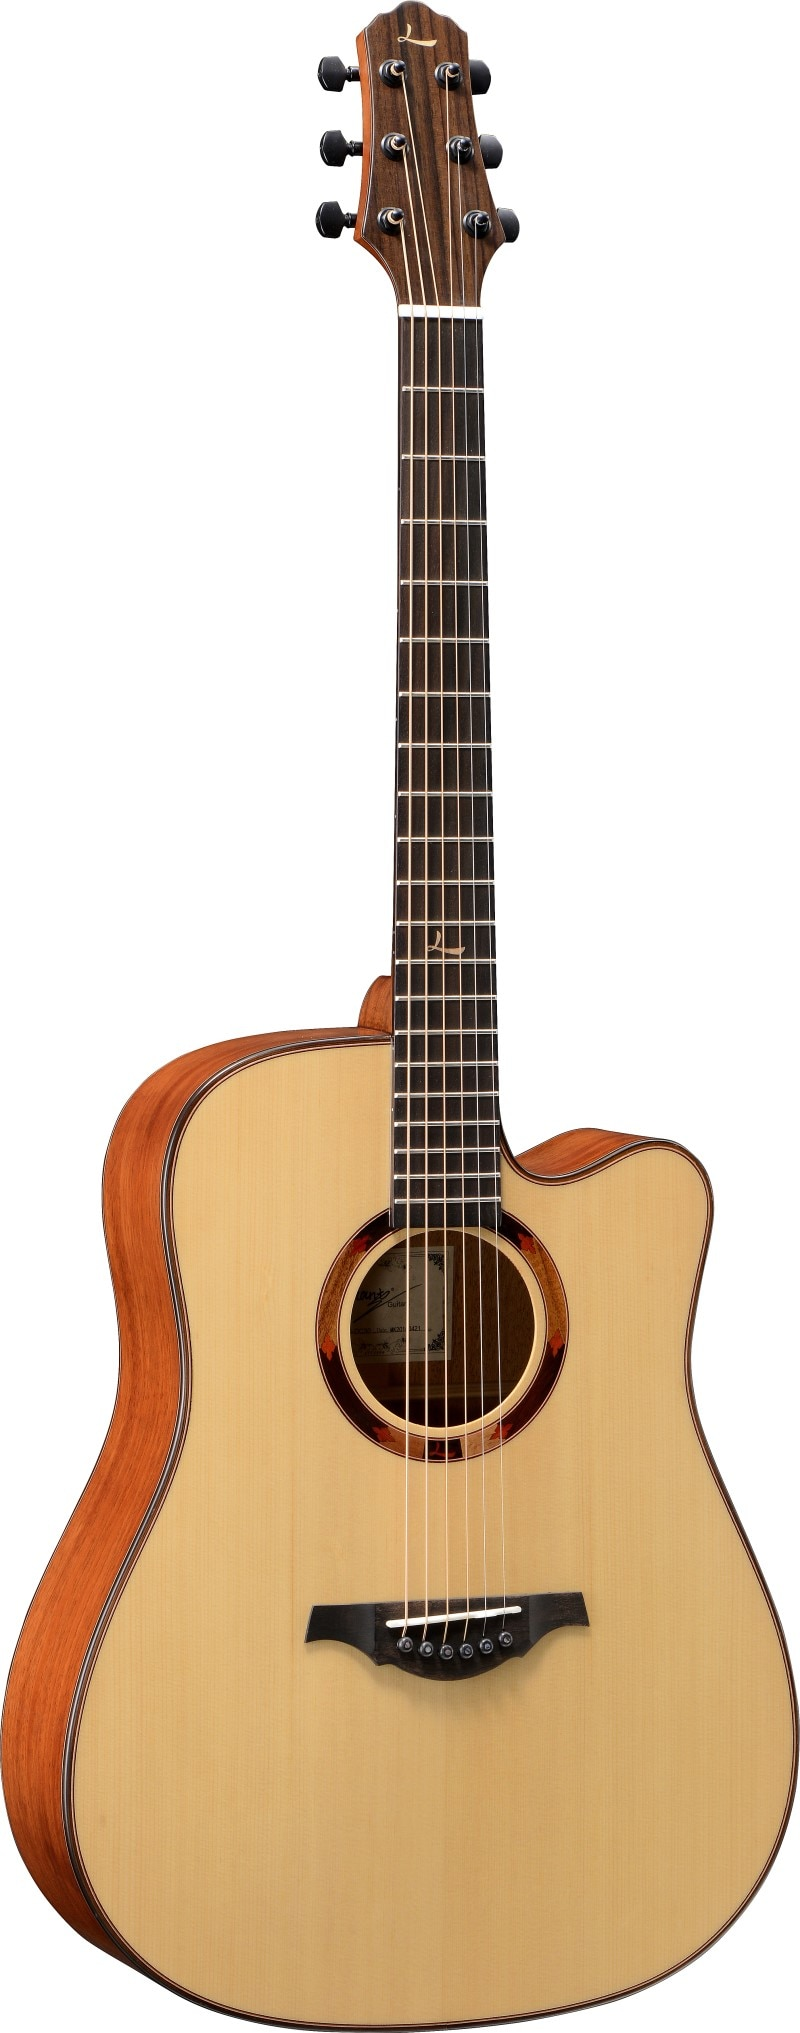 LeChant LS-DC30 Cutaway Solid Spruce Top Acoustic Guitar with Mahogany Back And Sides 41 Inches Guitarra for Practice enlarge